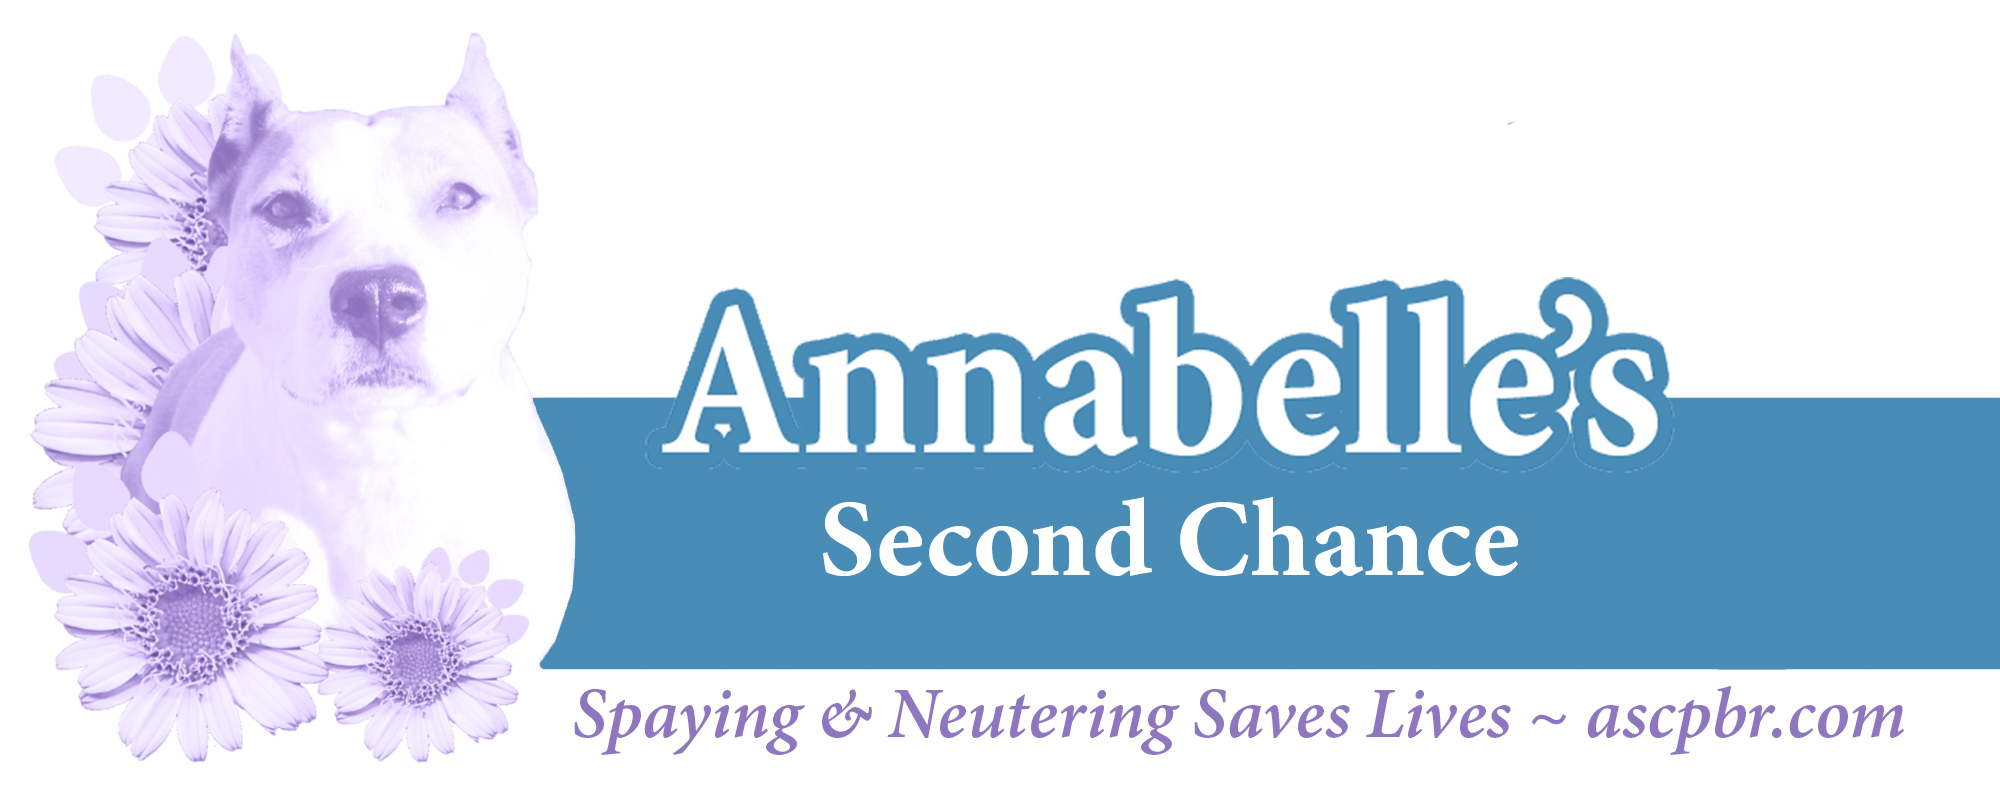 Annabelle's Second Chance